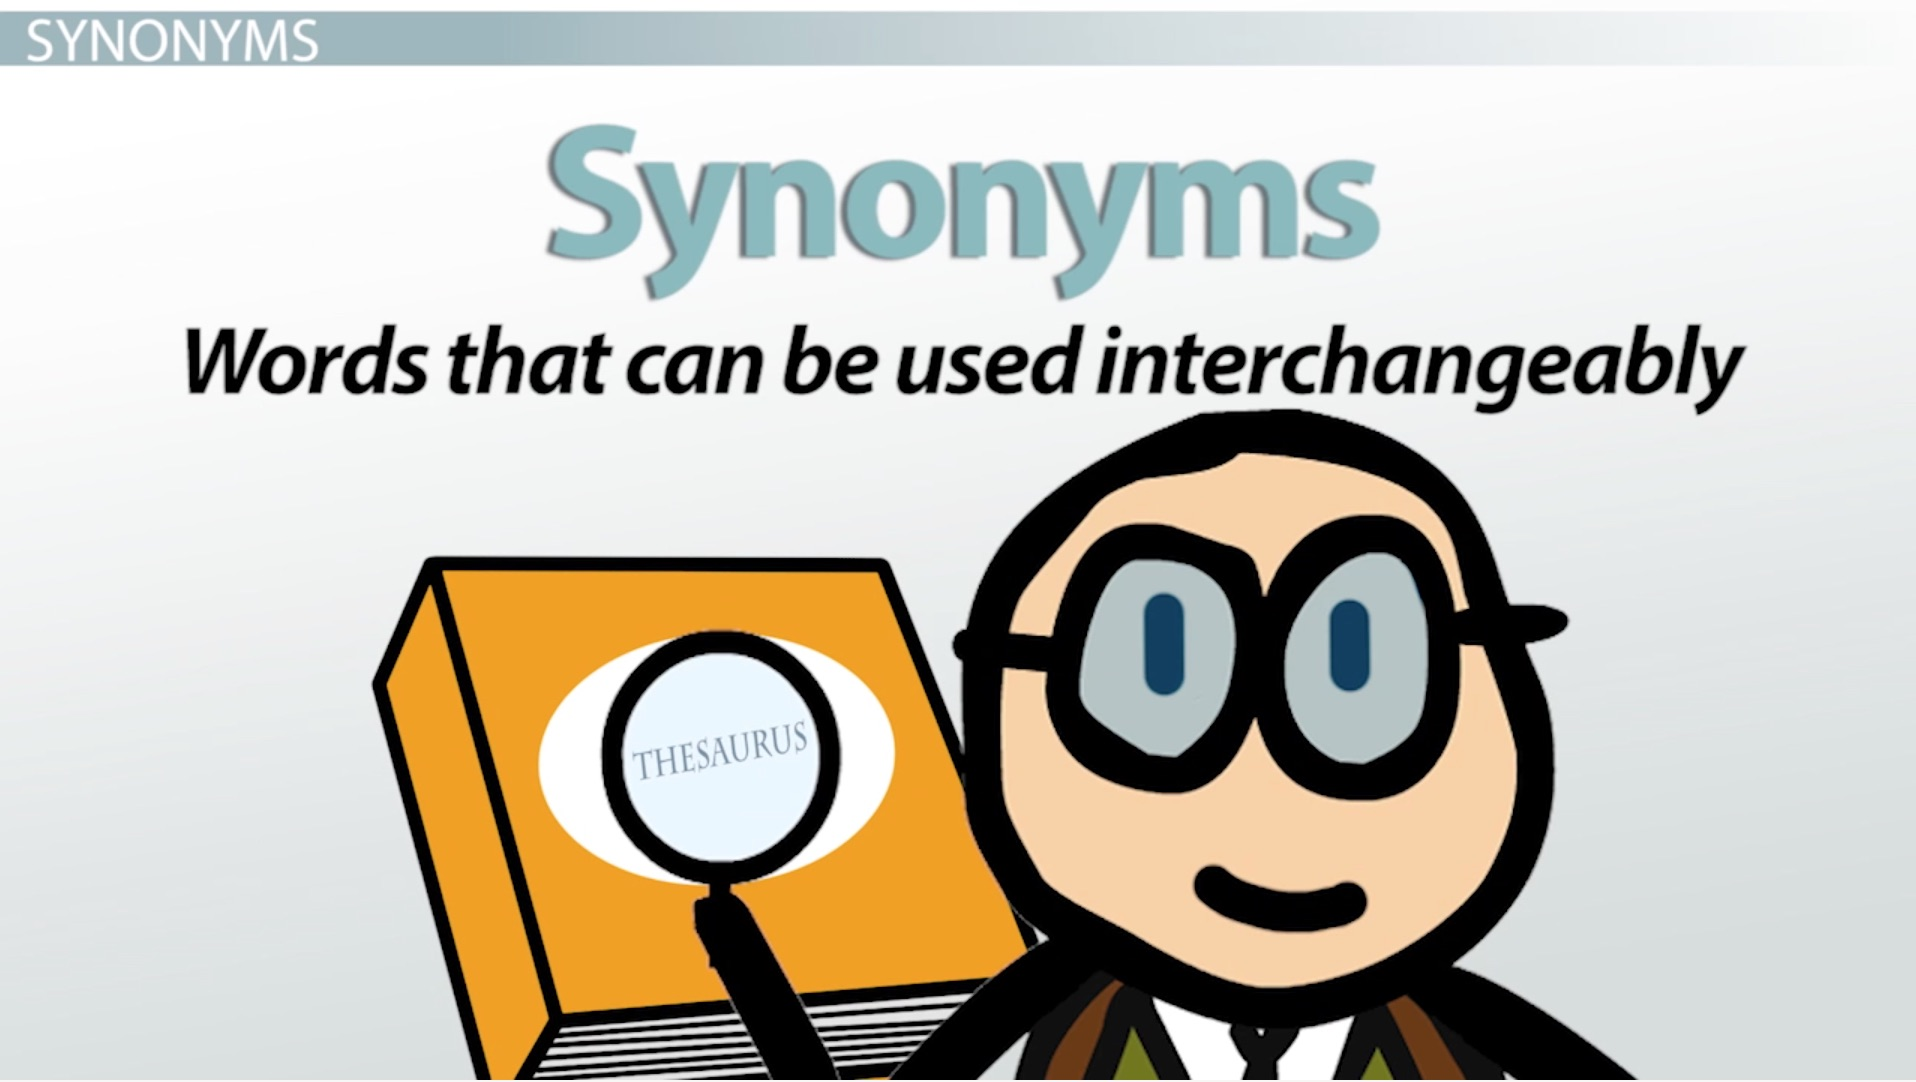 hight resolution of What Are Synonyms \u0026 Antonyms? - Definition \u0026 Examples - English Class  (Video)   Study.com